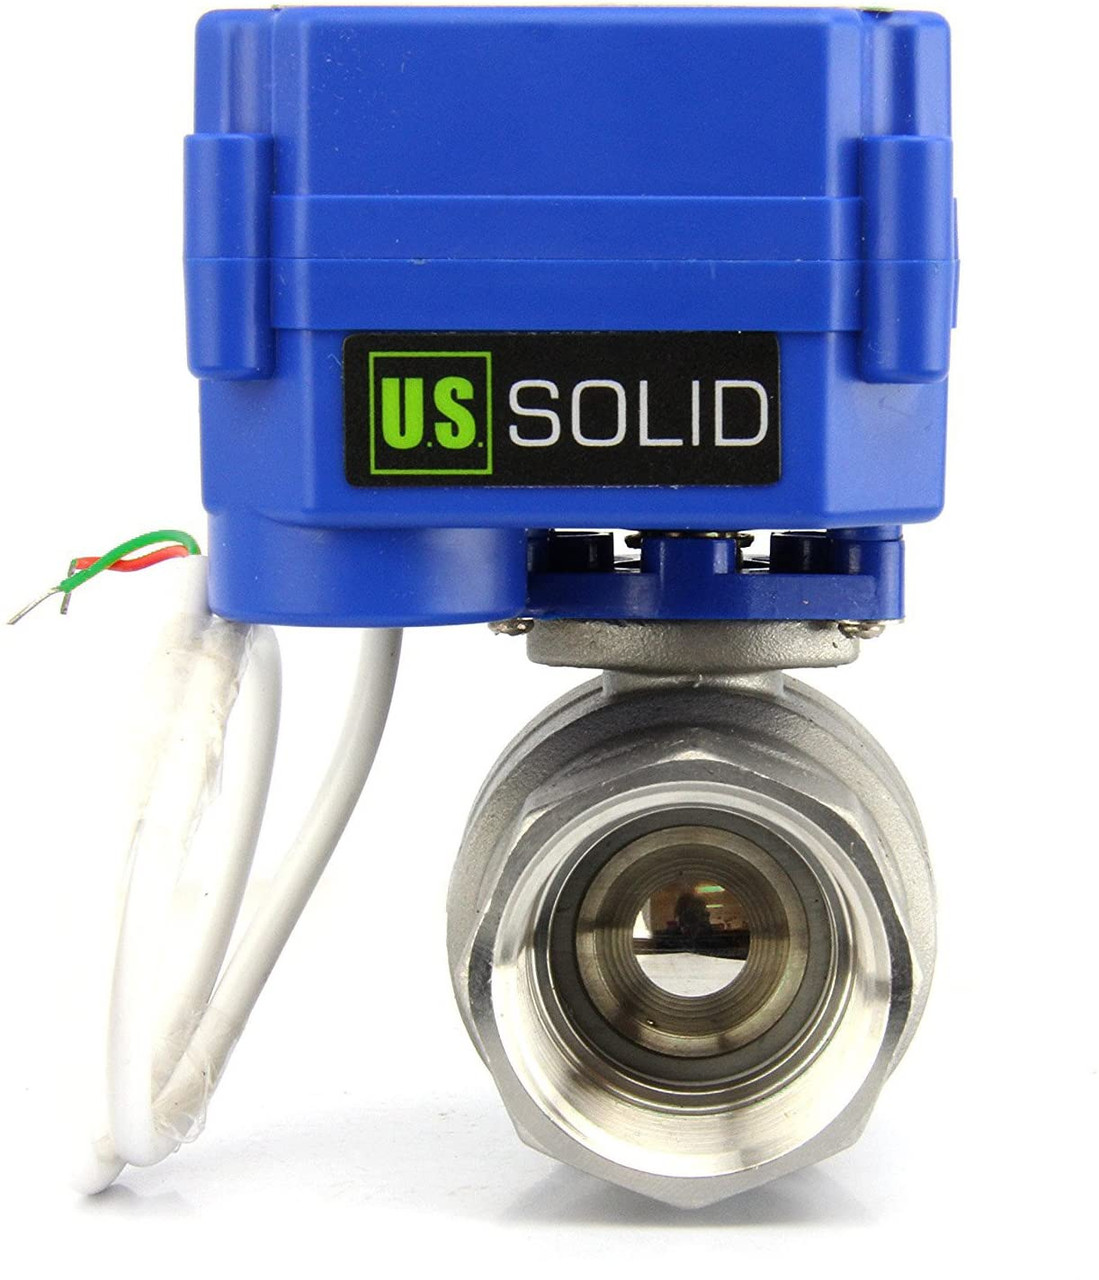 """U.S. Solid Motorized Ball Valve- 1"""" Stainless Steel Electrical Ball Valve with Standard Port, 85-265 V AC, 2 Wire Auto Return"""